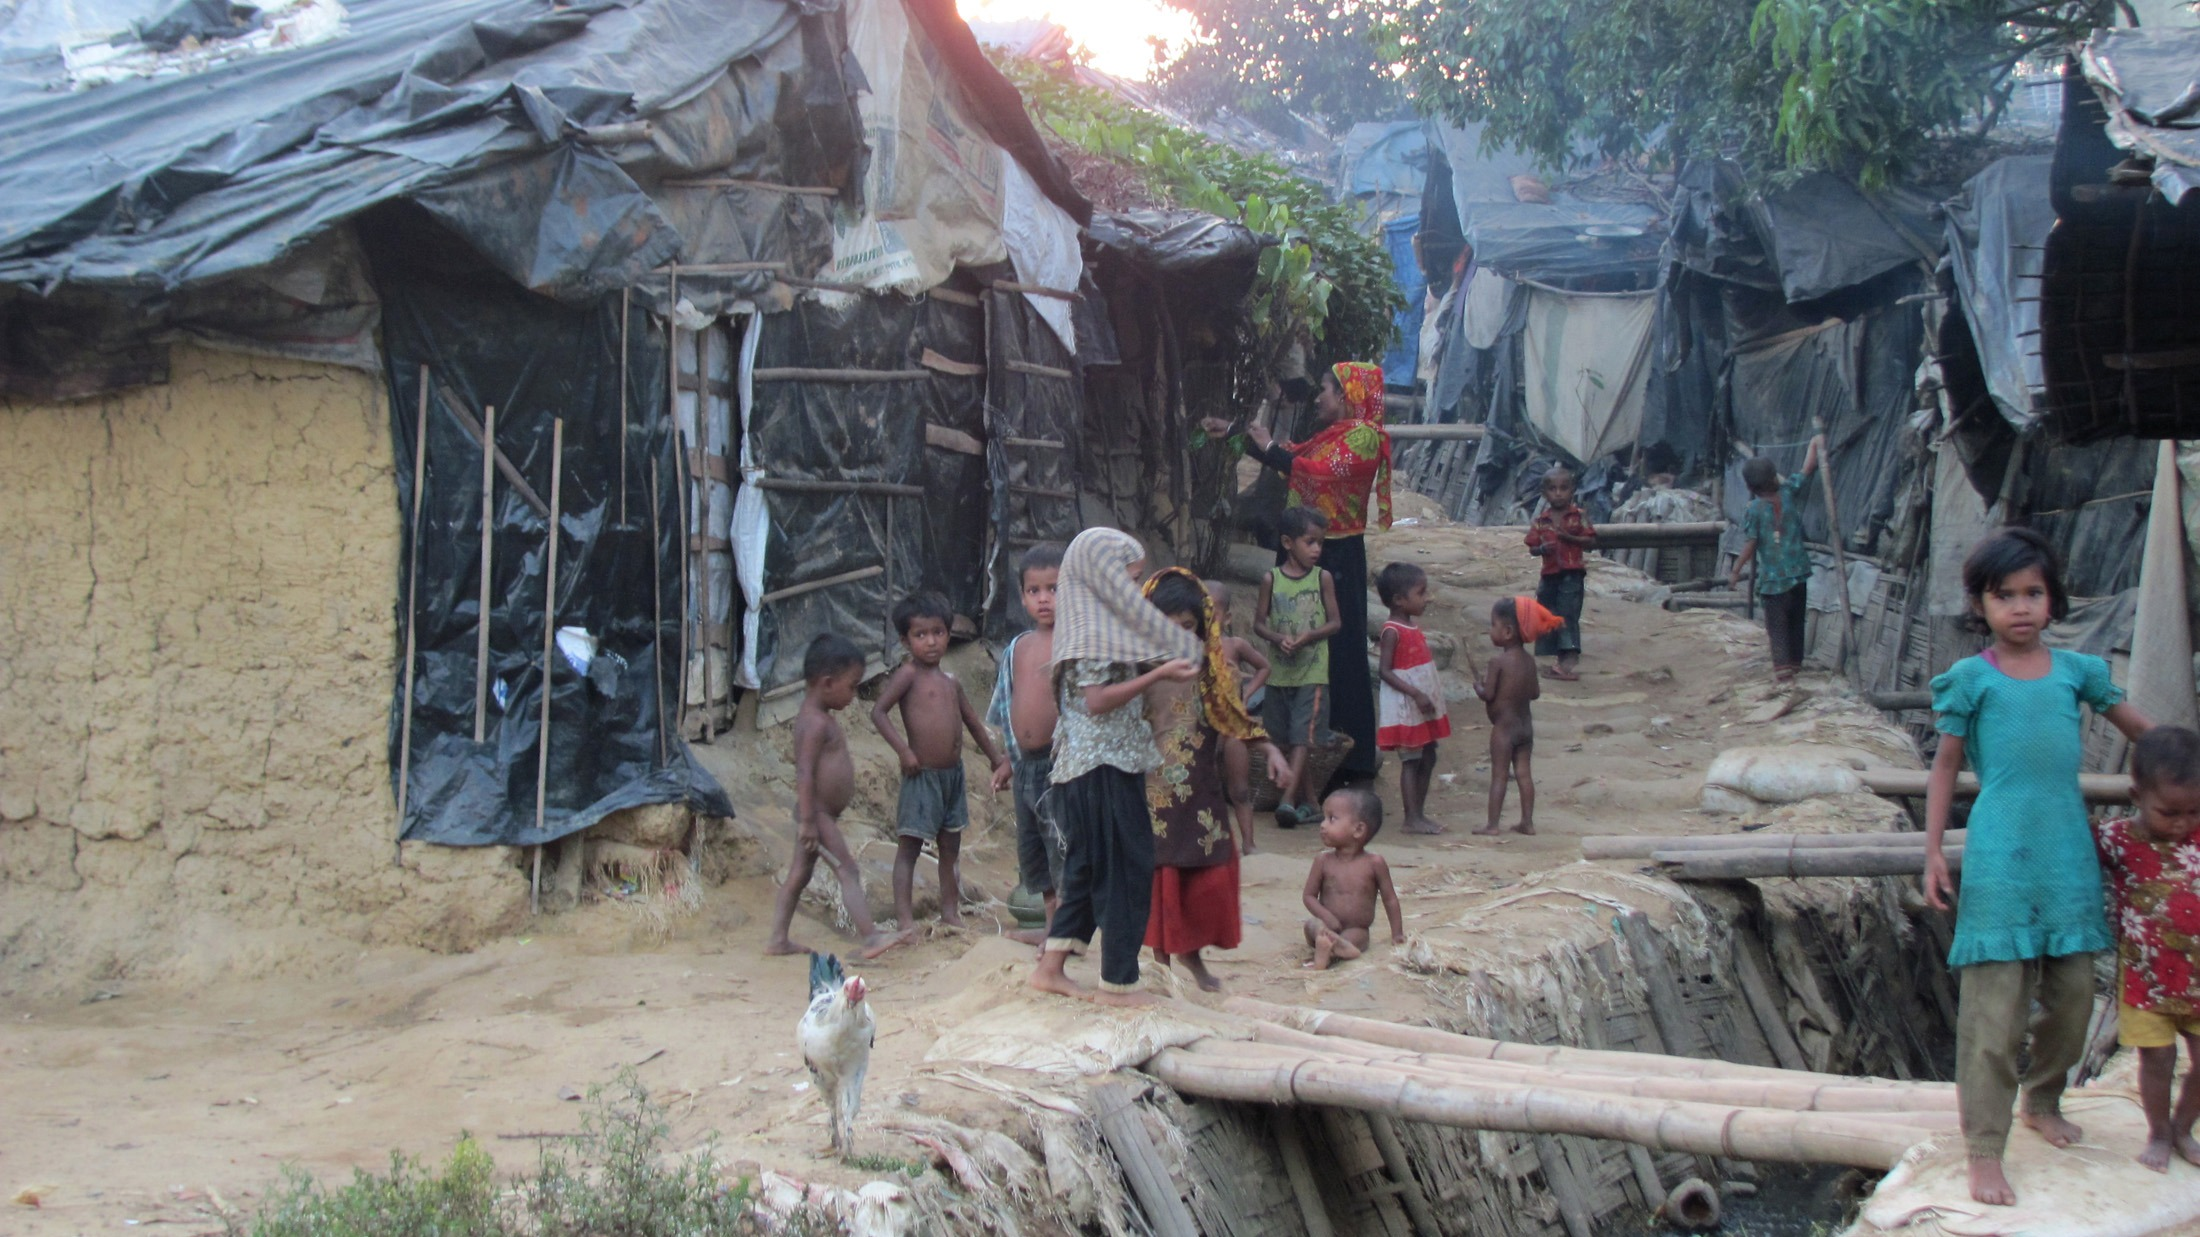 An unregistered Rohingya refugee camp in southern Bangladesh.